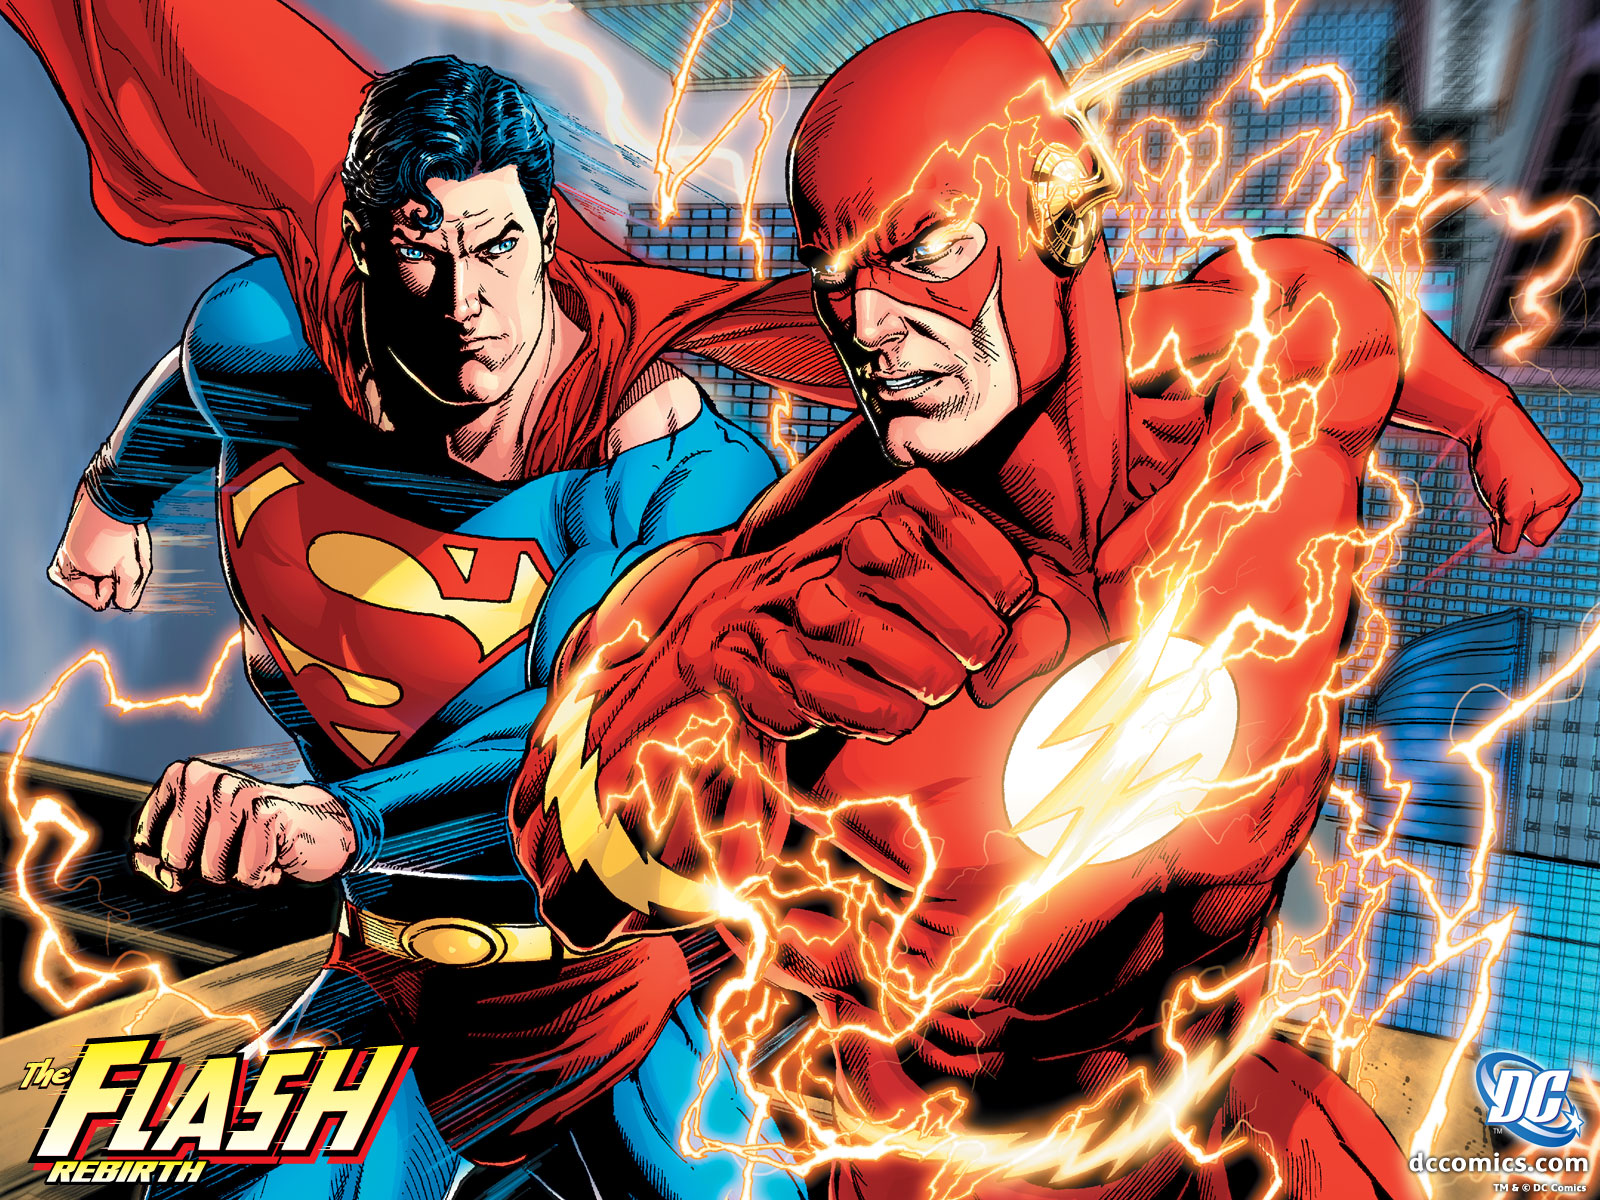 Comics Wallpapers DC Comics Flash Wallpapers Flash Comics Wallpaper 1600x1200